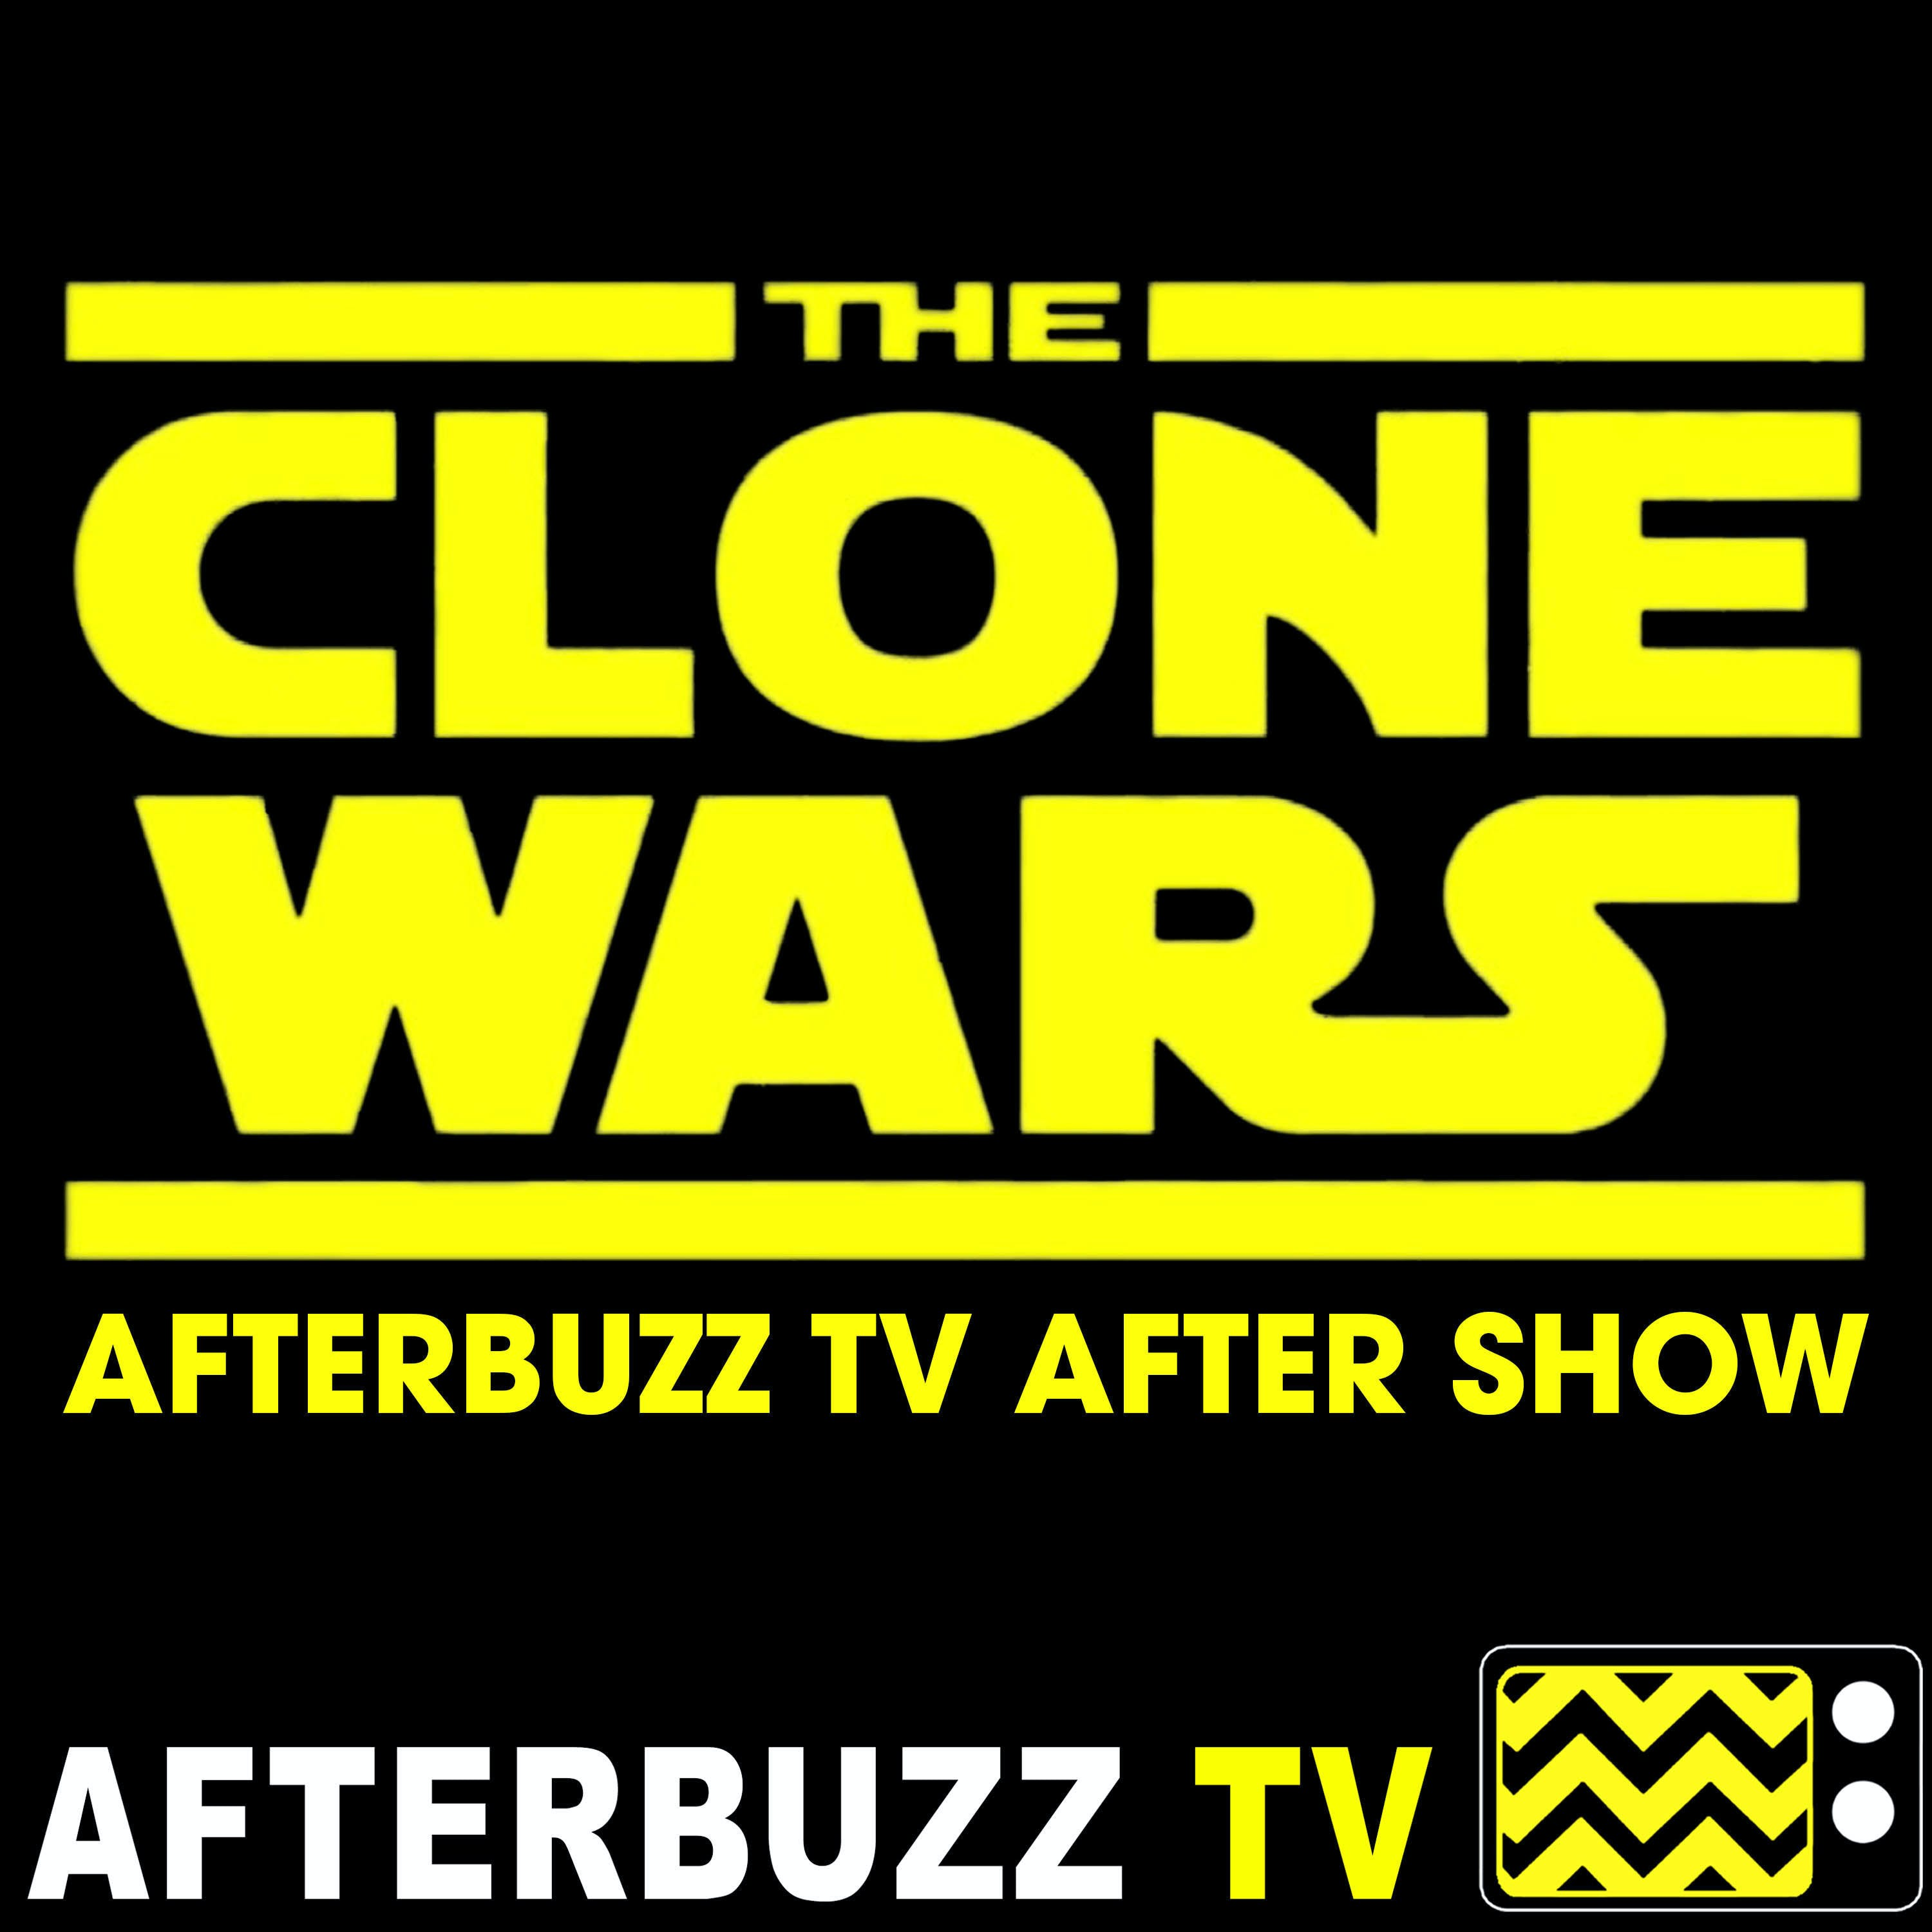 You're What The Jedi Should Be - S7 E8 'Star Wars: Clone Wars' Recap & Review